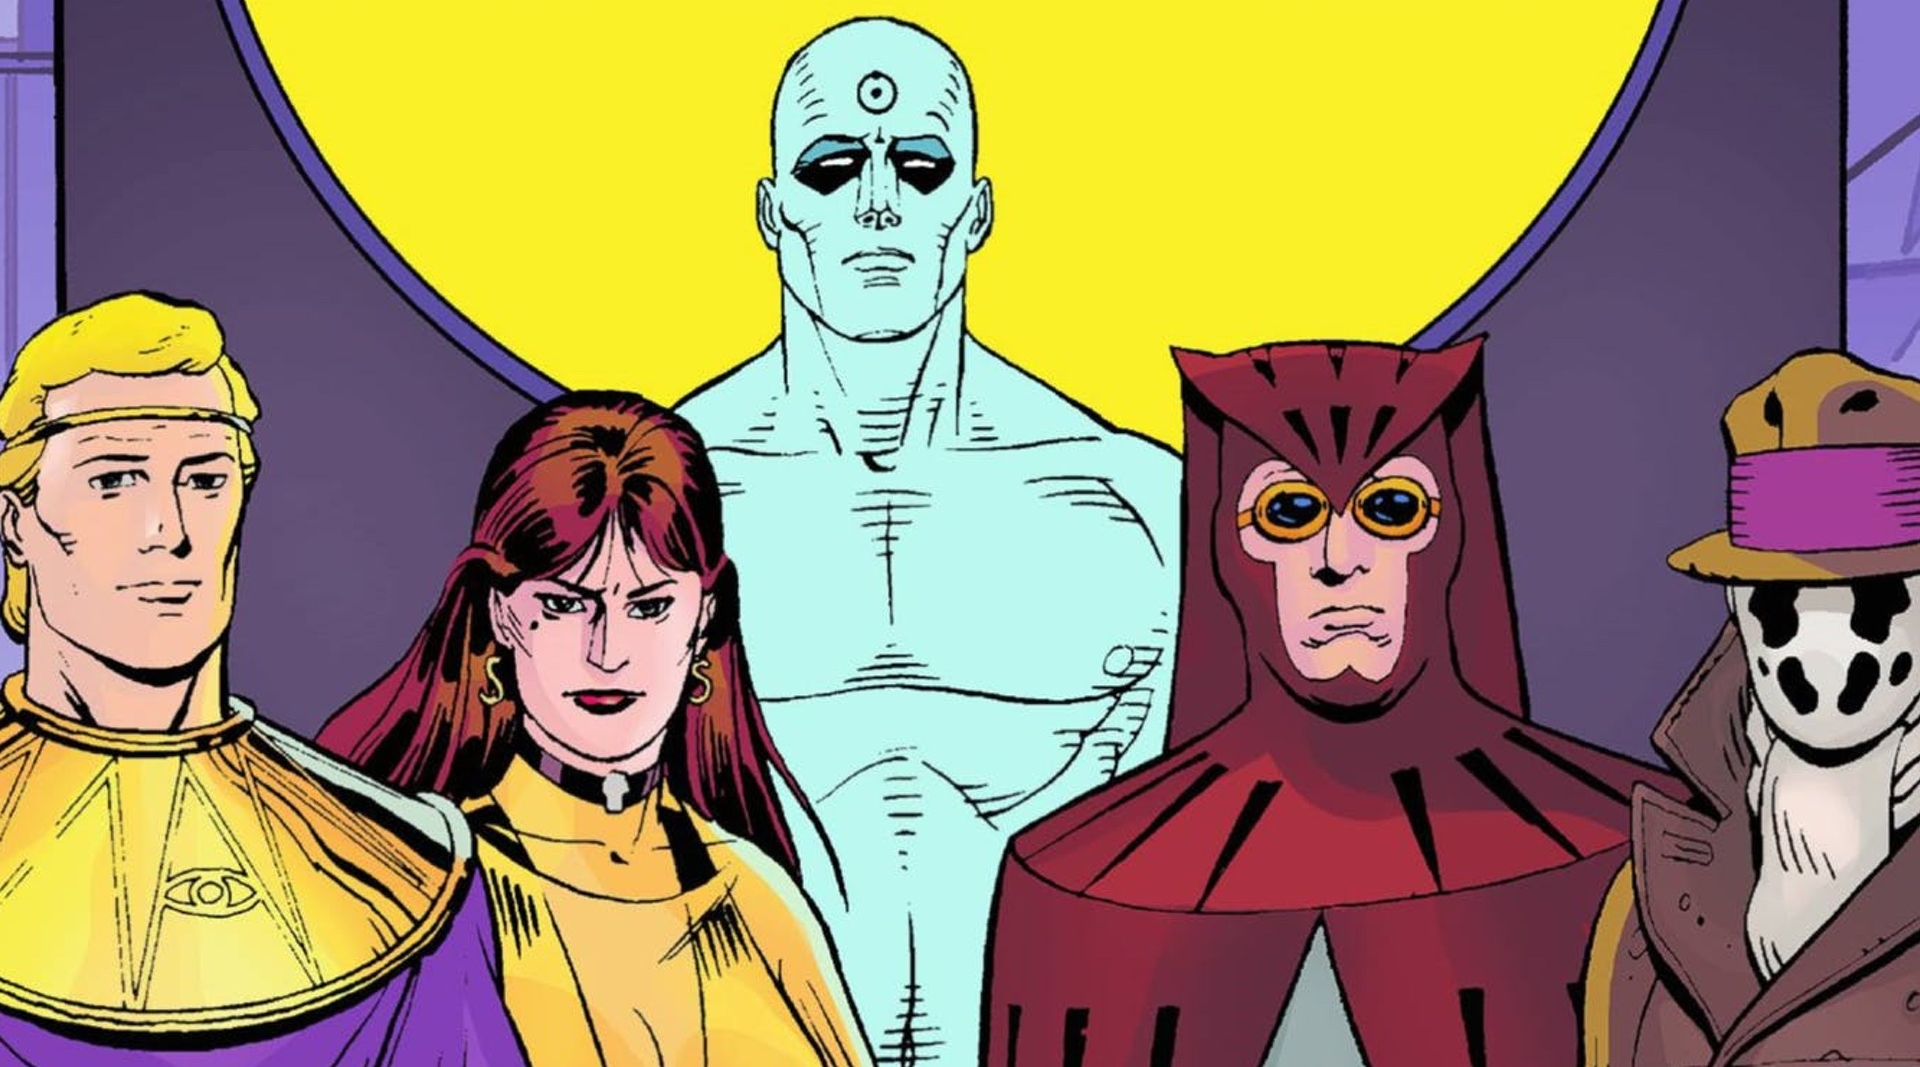 the-score-for-hbos-watchmen-series-will-be-composed-by-trent-reznor-and-atticus-ross-social.jpg